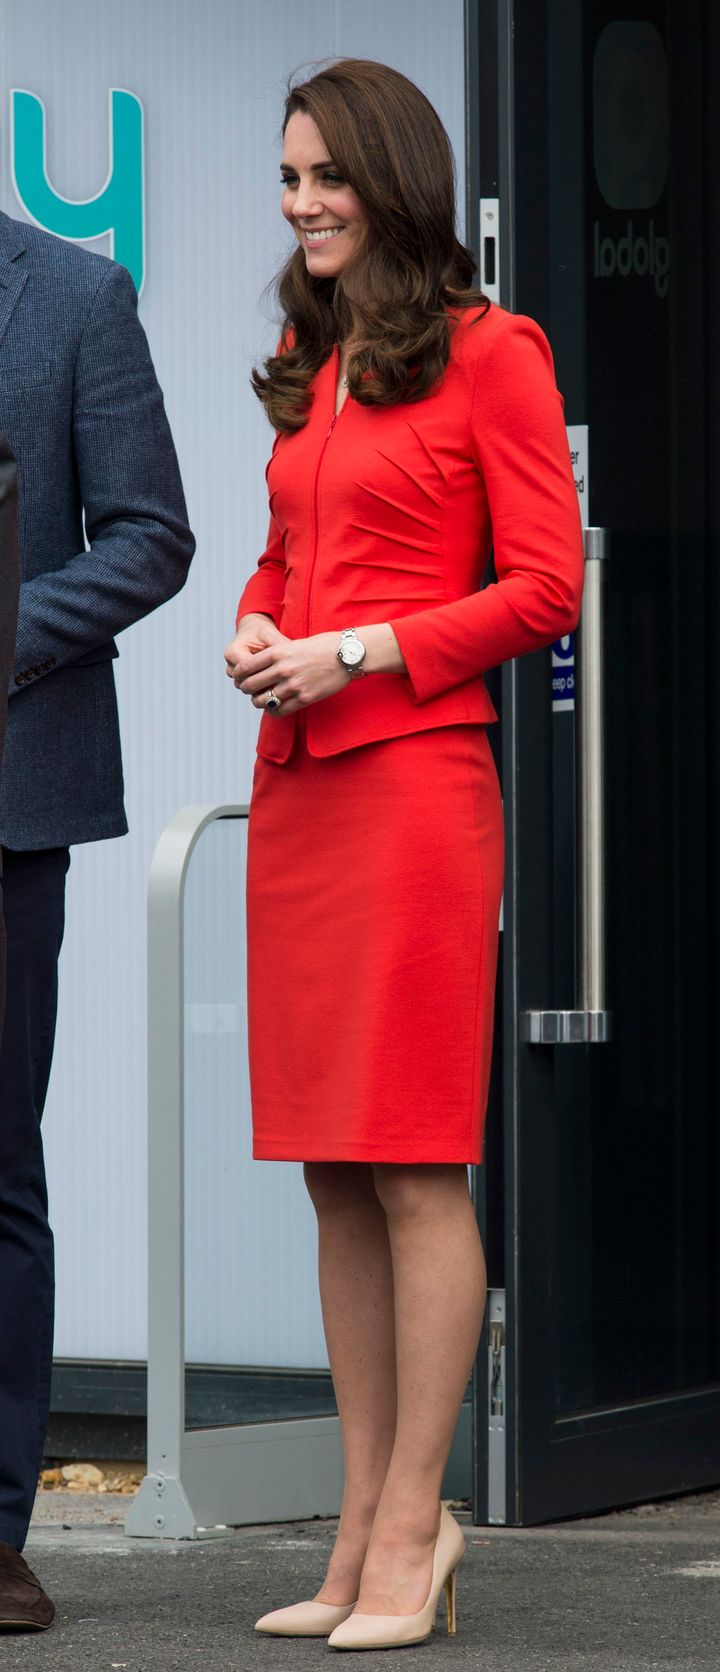 In an Armani suit, England, on 20 April2017.